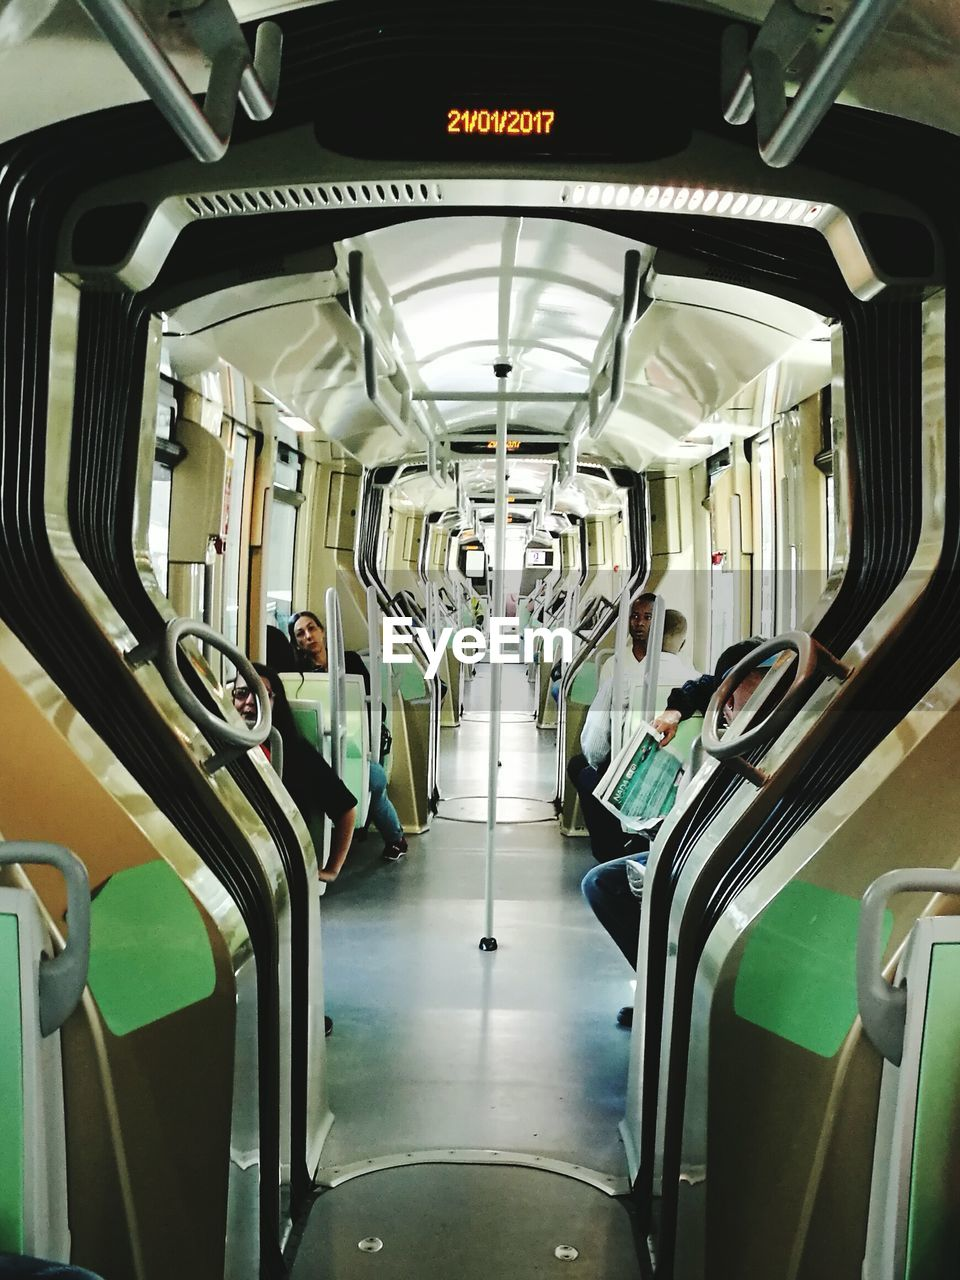 vehicle interior, transportation, vehicle seat, mode of transport, train - vehicle, public transportation, in a row, train interior, travel, subway train, empty, seat, indoors, sitting, journey, airplane seat, commuter train, illuminated, no people, day